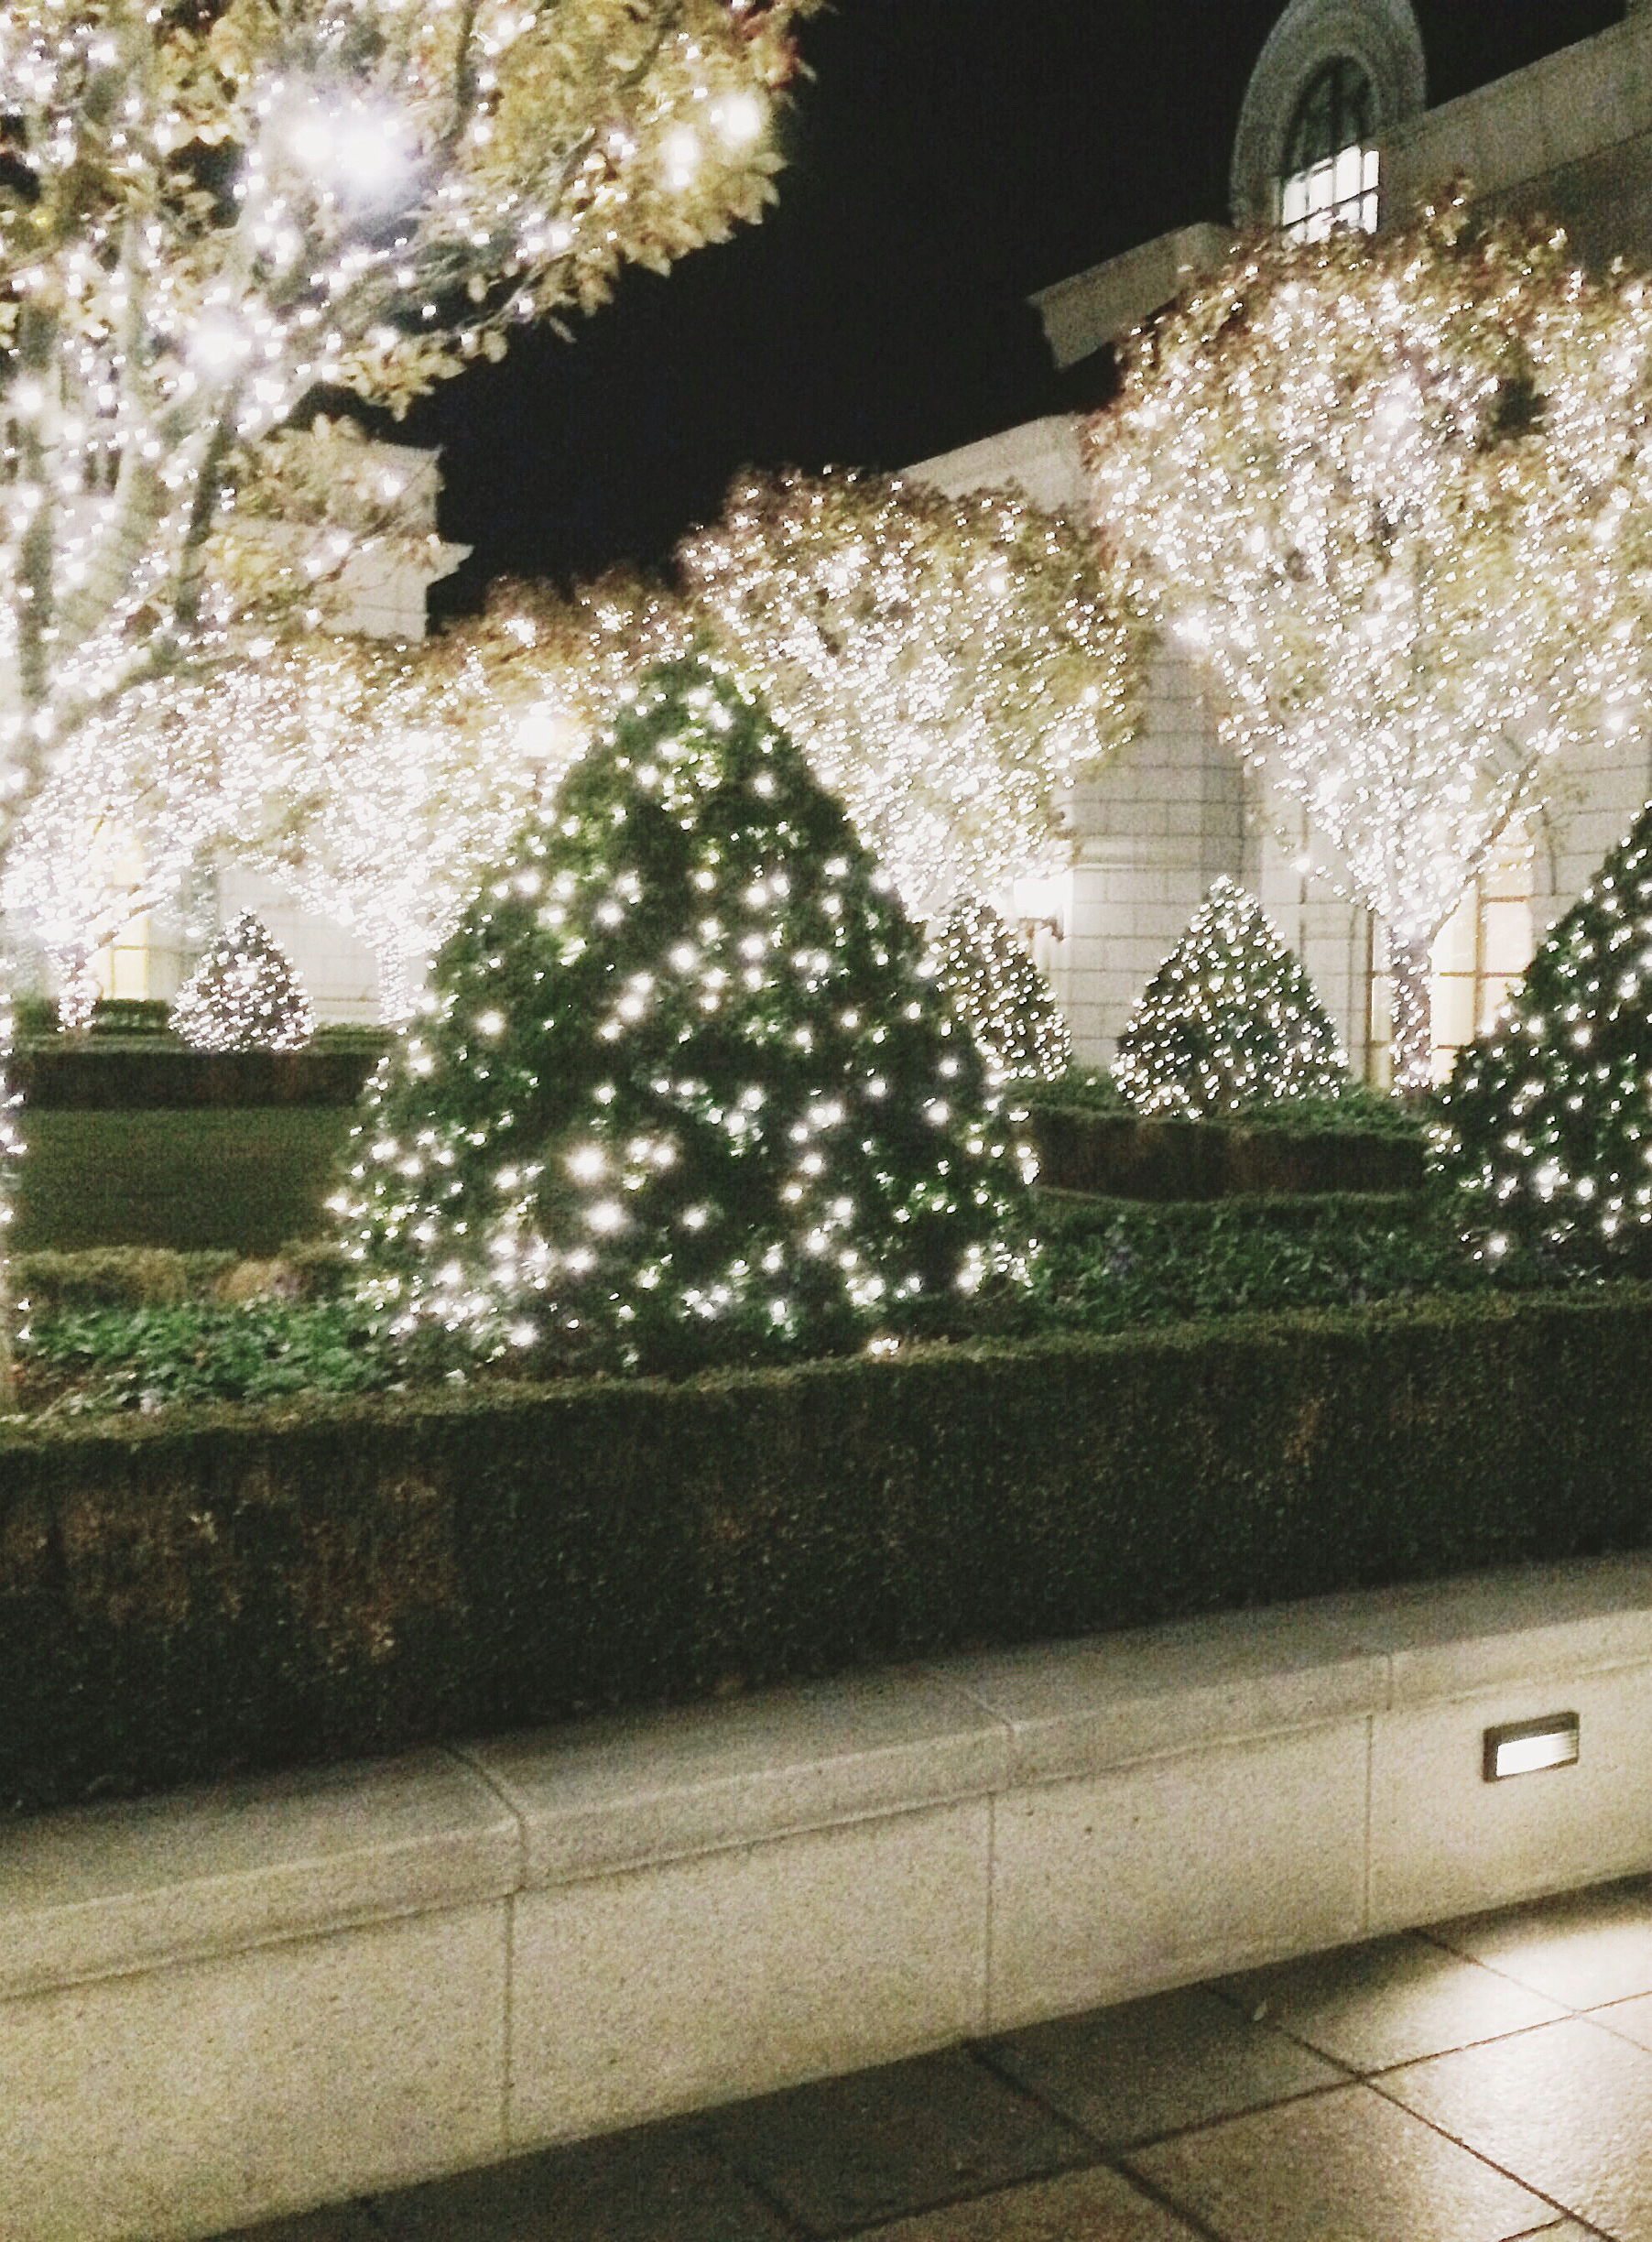 The grounds at The Grand America, decked out in holiday splendor